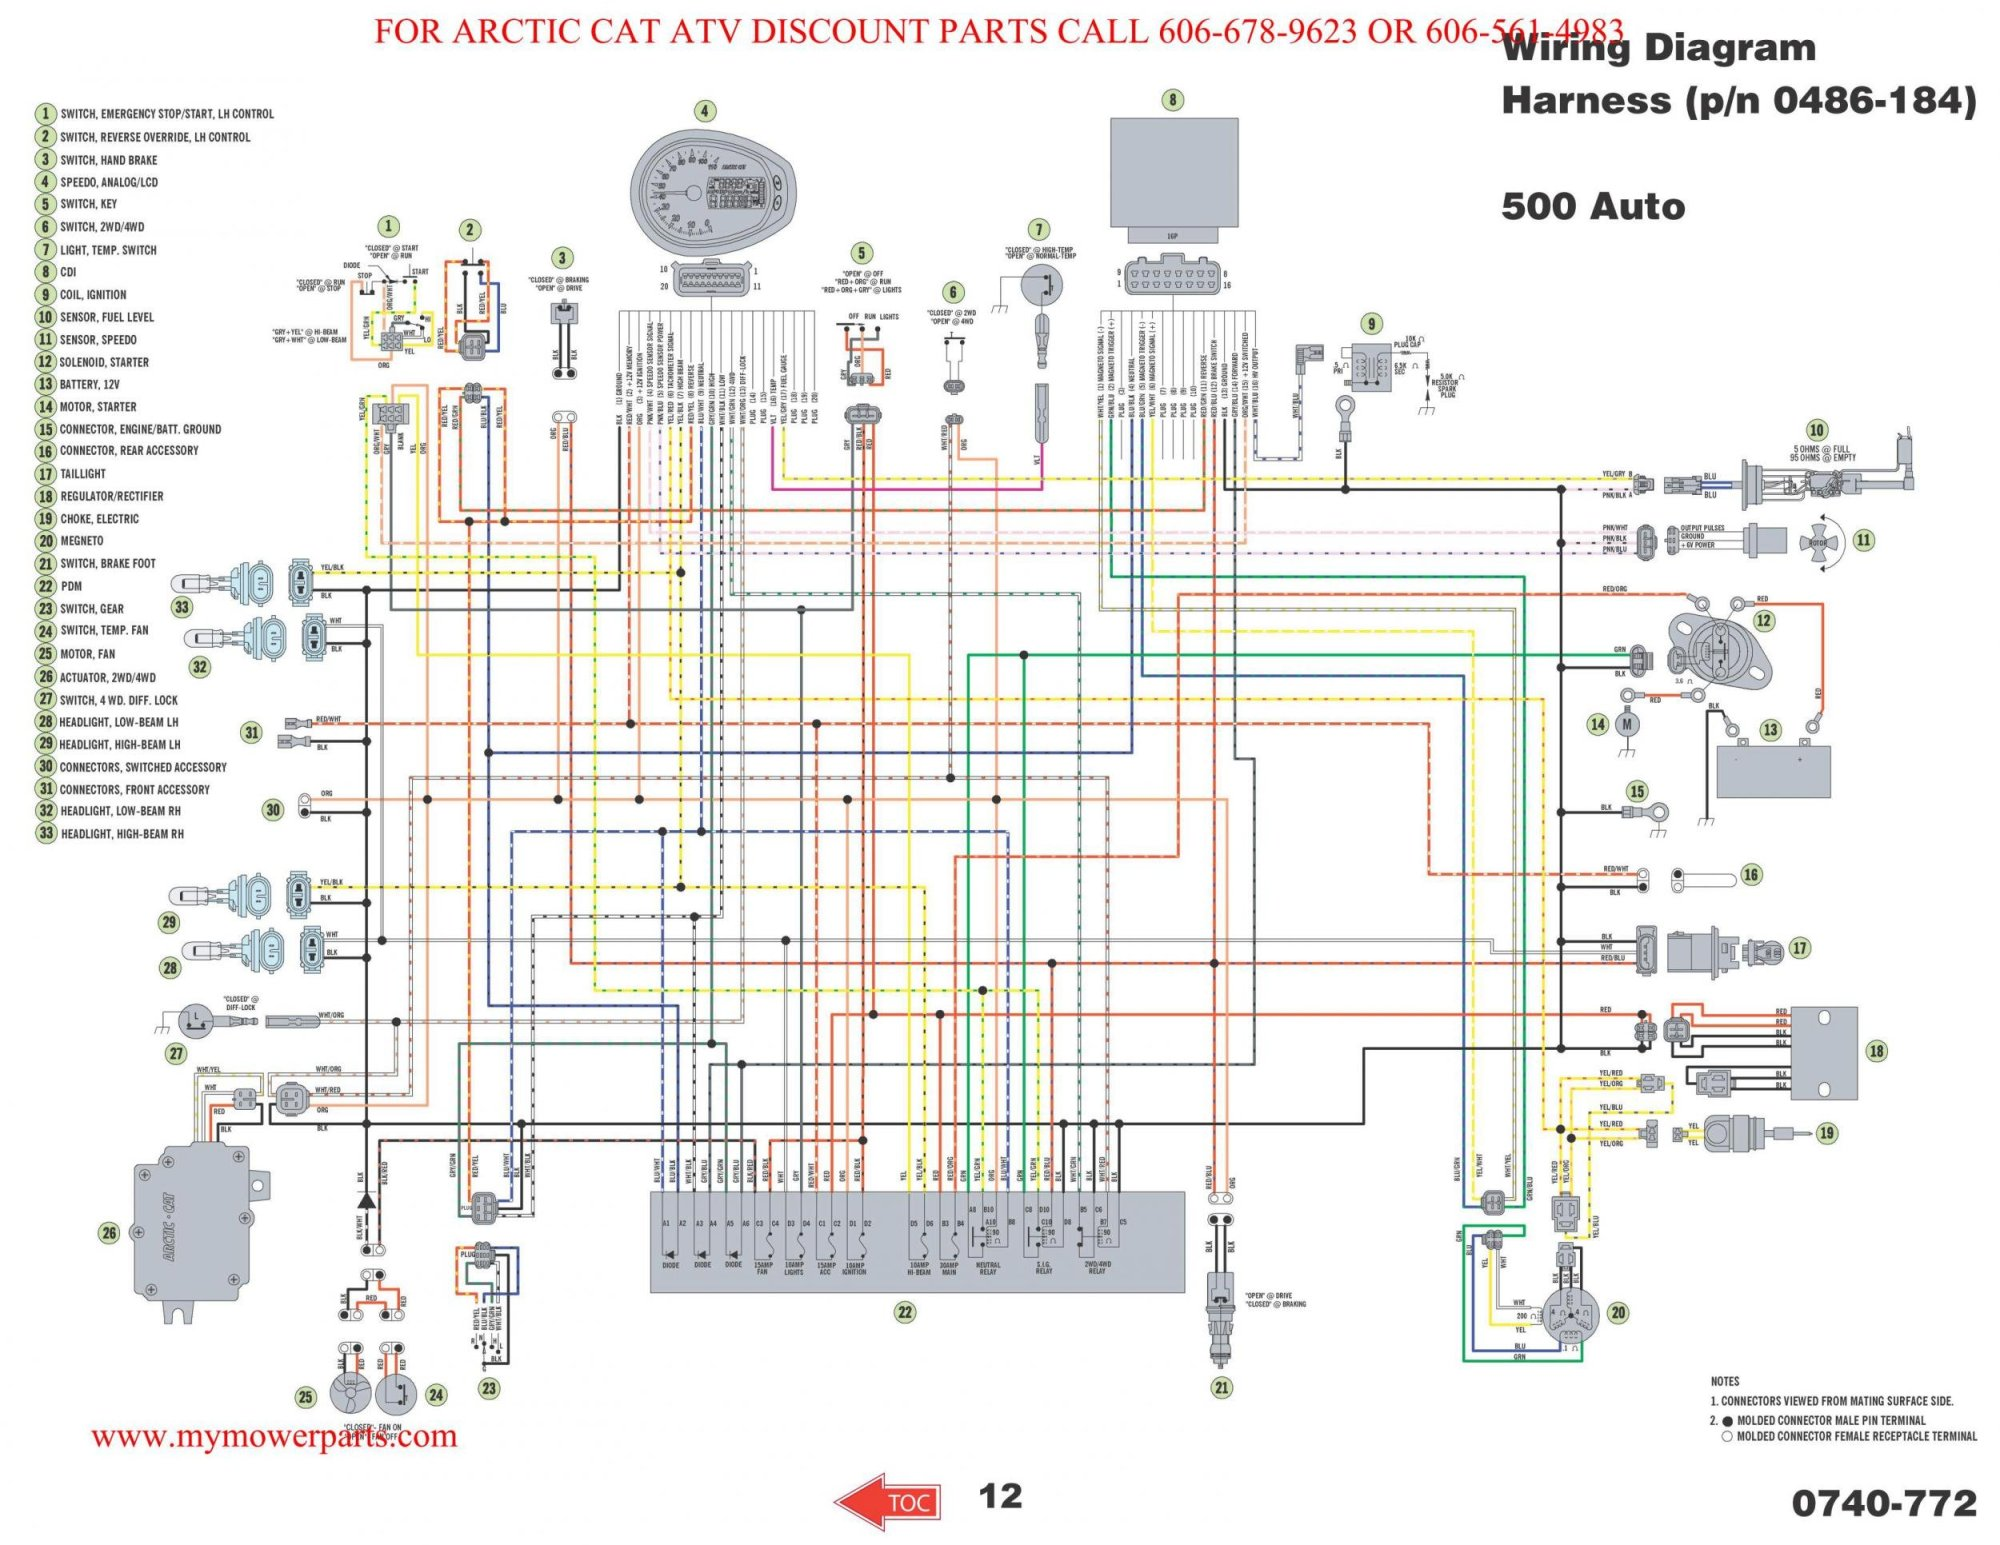 hight resolution of arctic cat 500 wiring diagram 2001 wiring diagram third level arctic cat 650 h1 wire diagrams 2003 arctic cat 400 wiring diagram